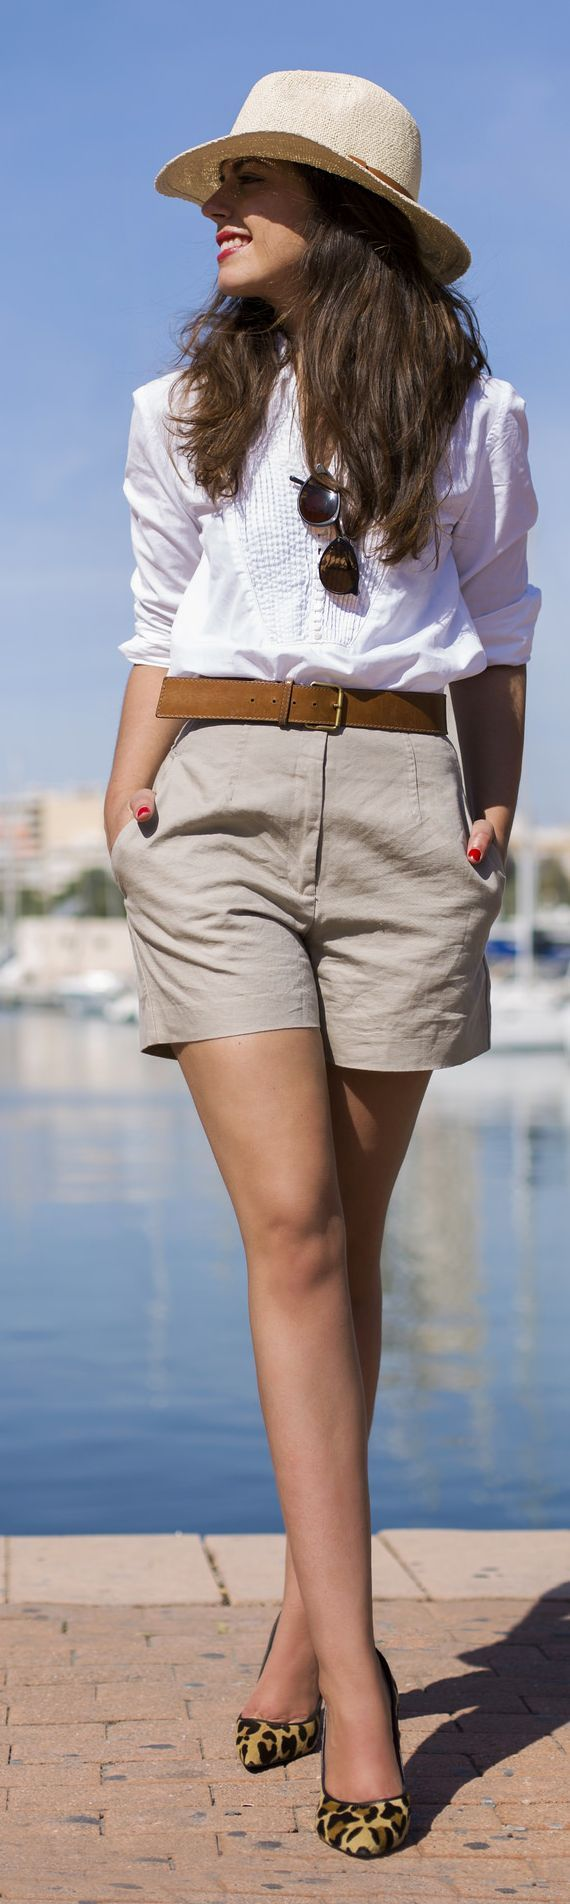 white shirts beige shorts + hat . Summer street women fashion outfit clothing style apparel @roressclothes closet ideas